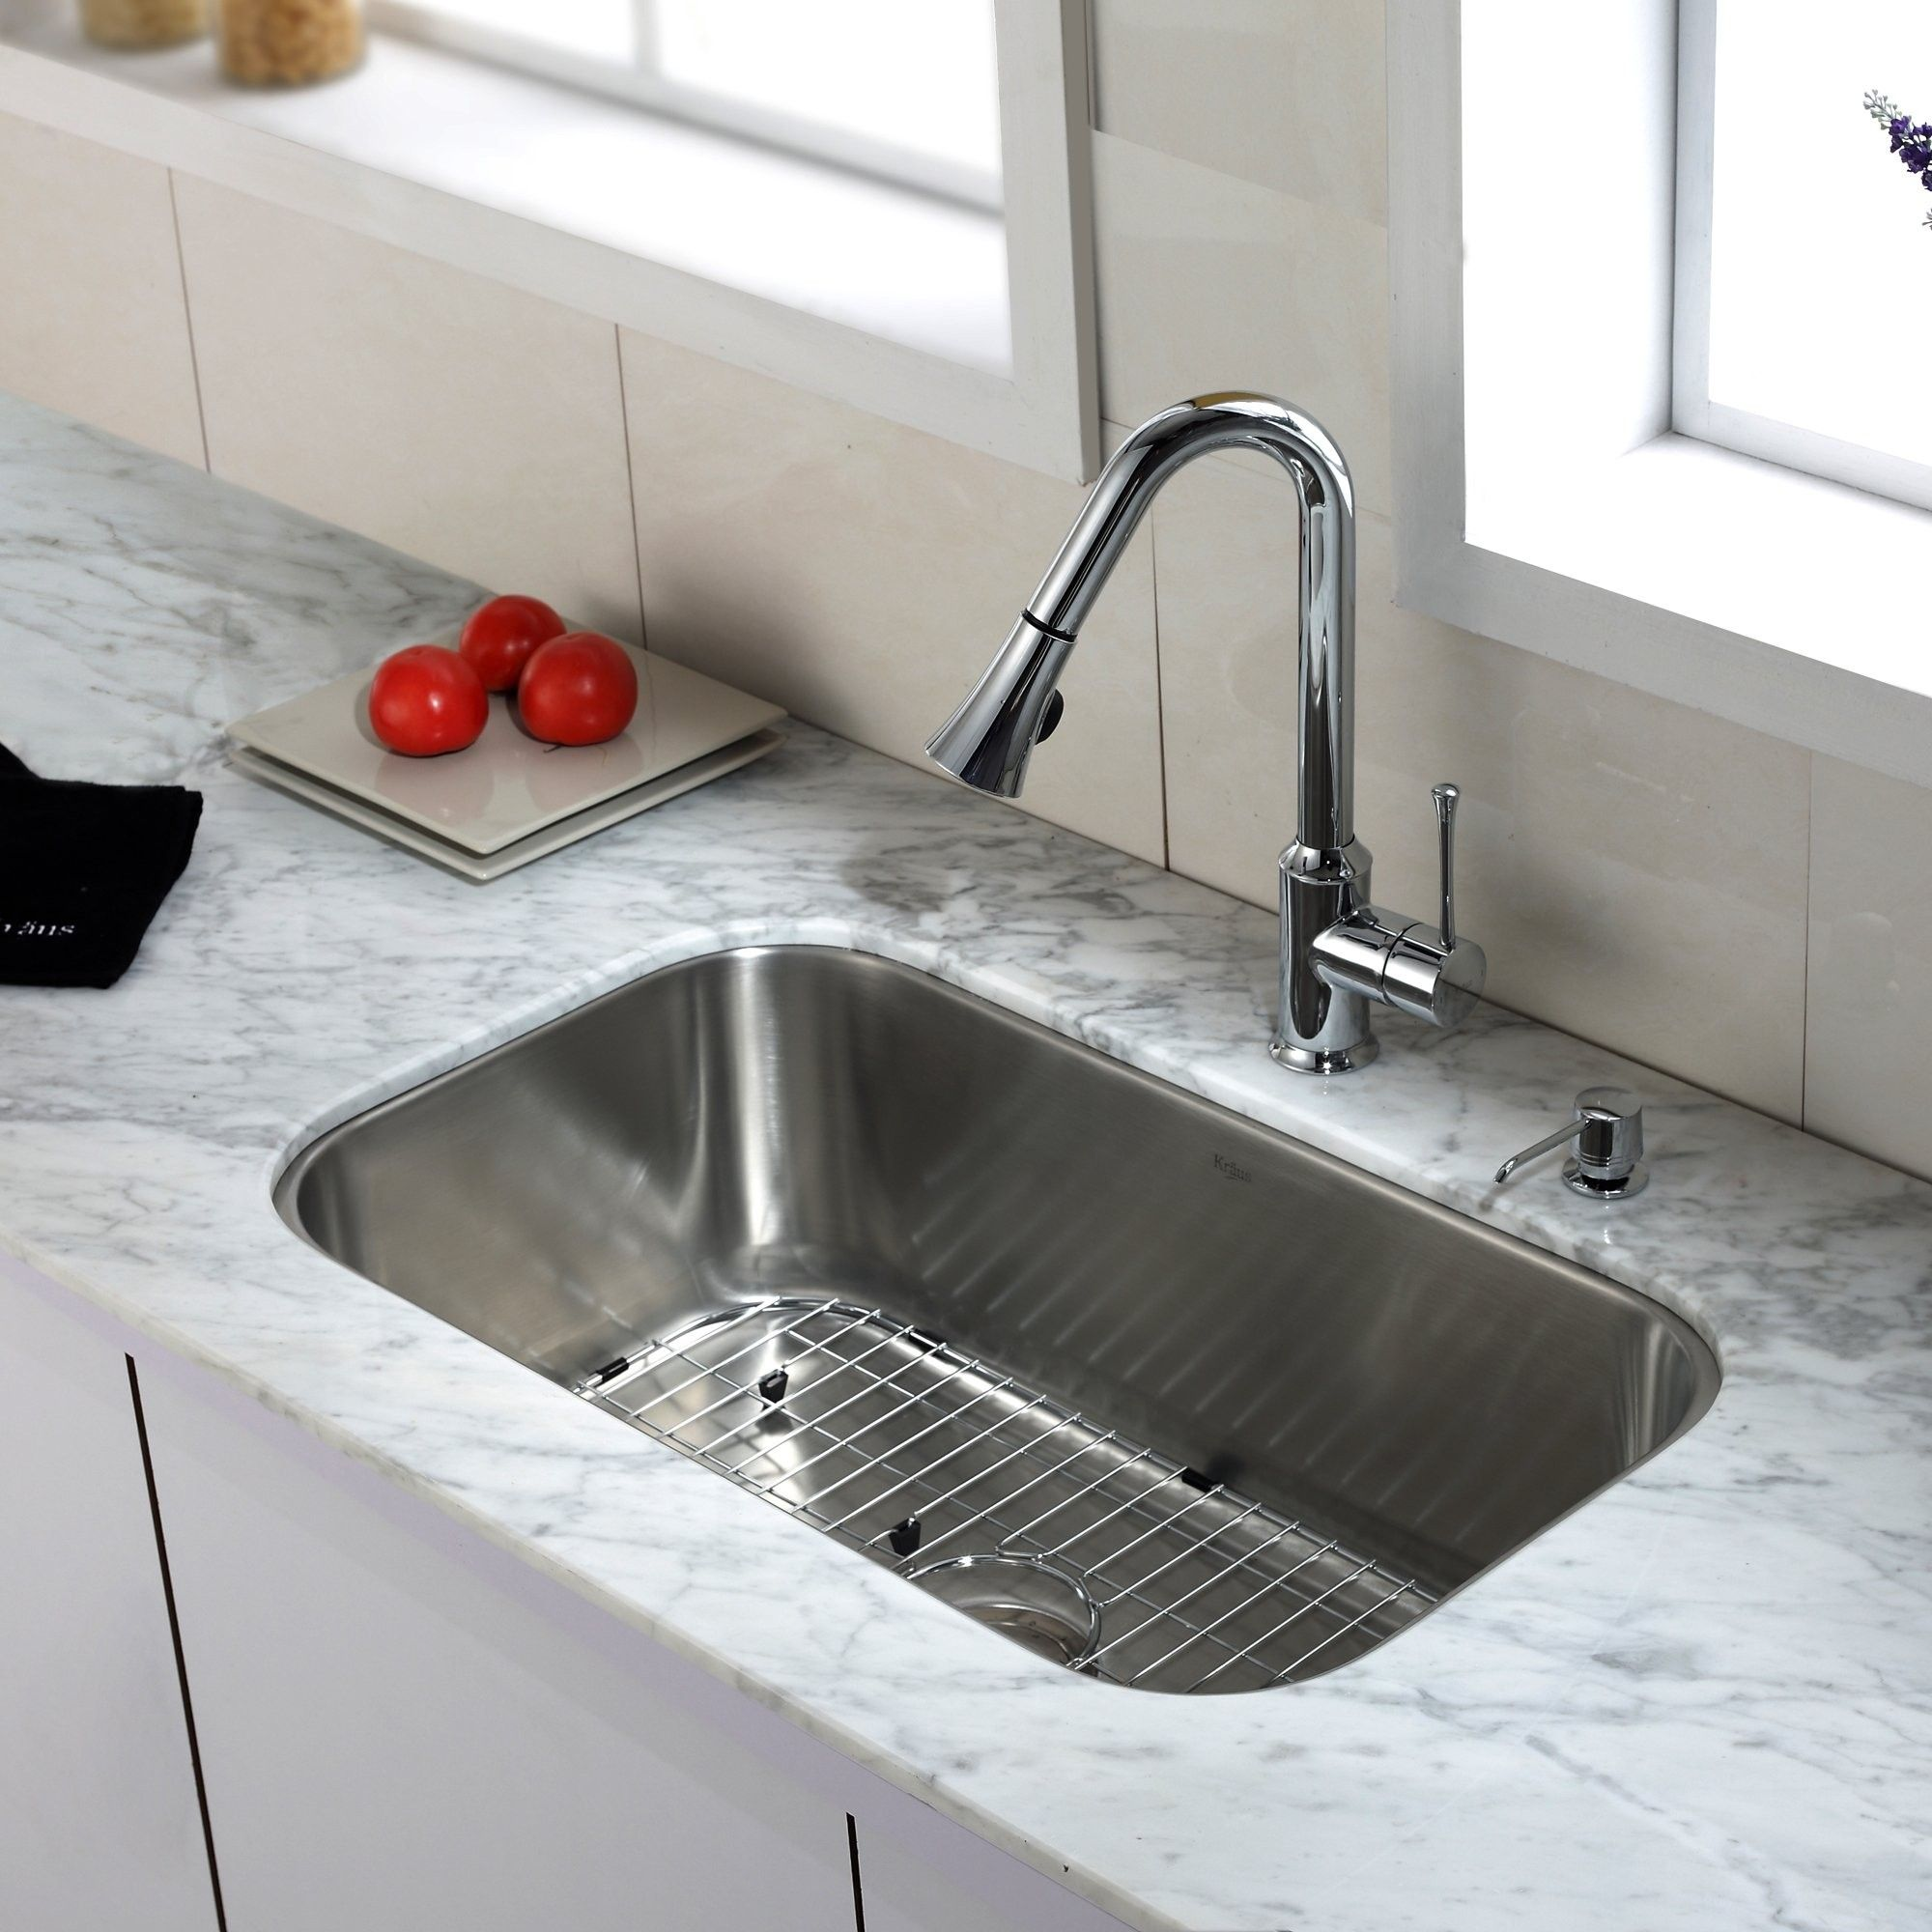 Best kitchen faucet for undermount sink latulufofeed